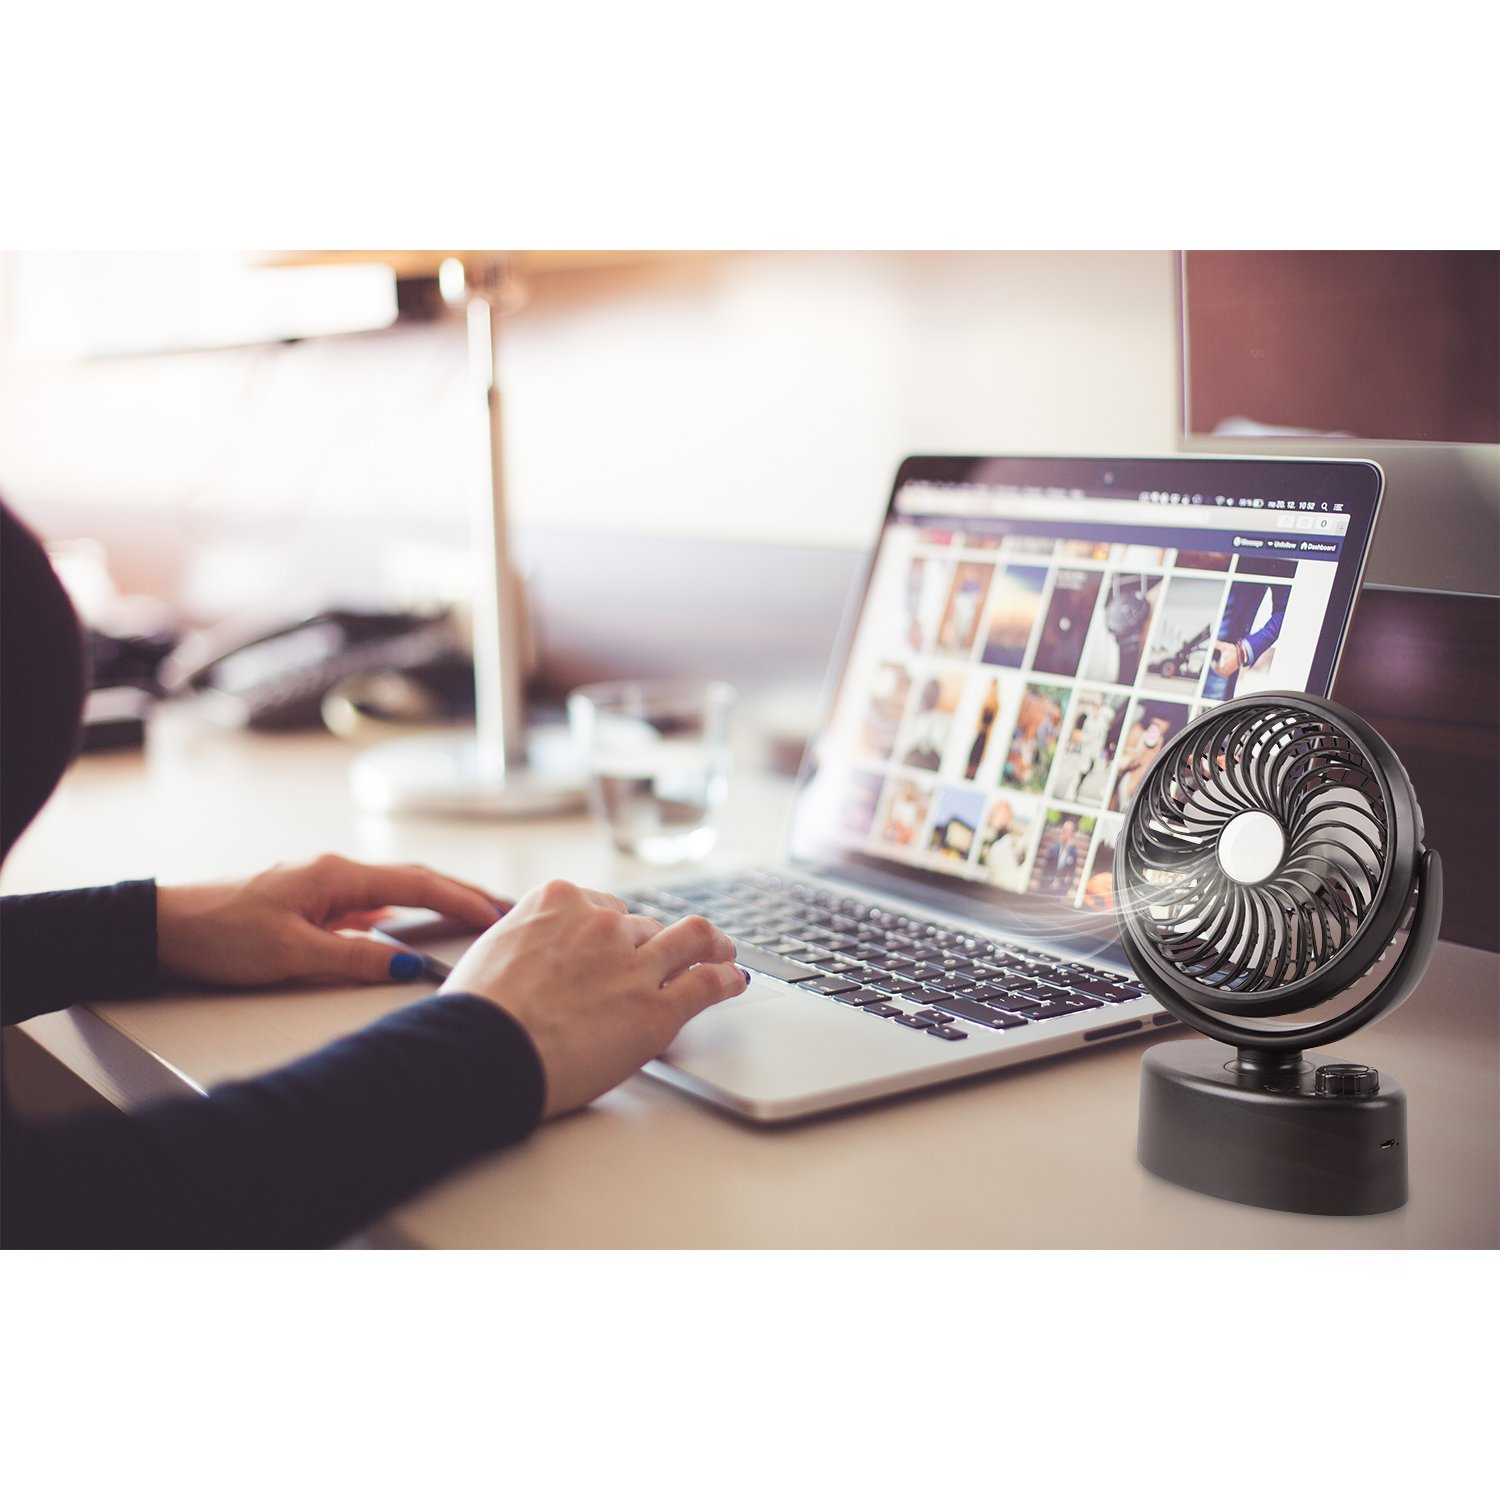 Adjustable Wind Power and Silent Portable Fan 360 Degree Rotation and Swiveling Desk Fan HG278 Battery NOT Include Xcellent Global Mini USB Oscillating Rechargeable Table Fan